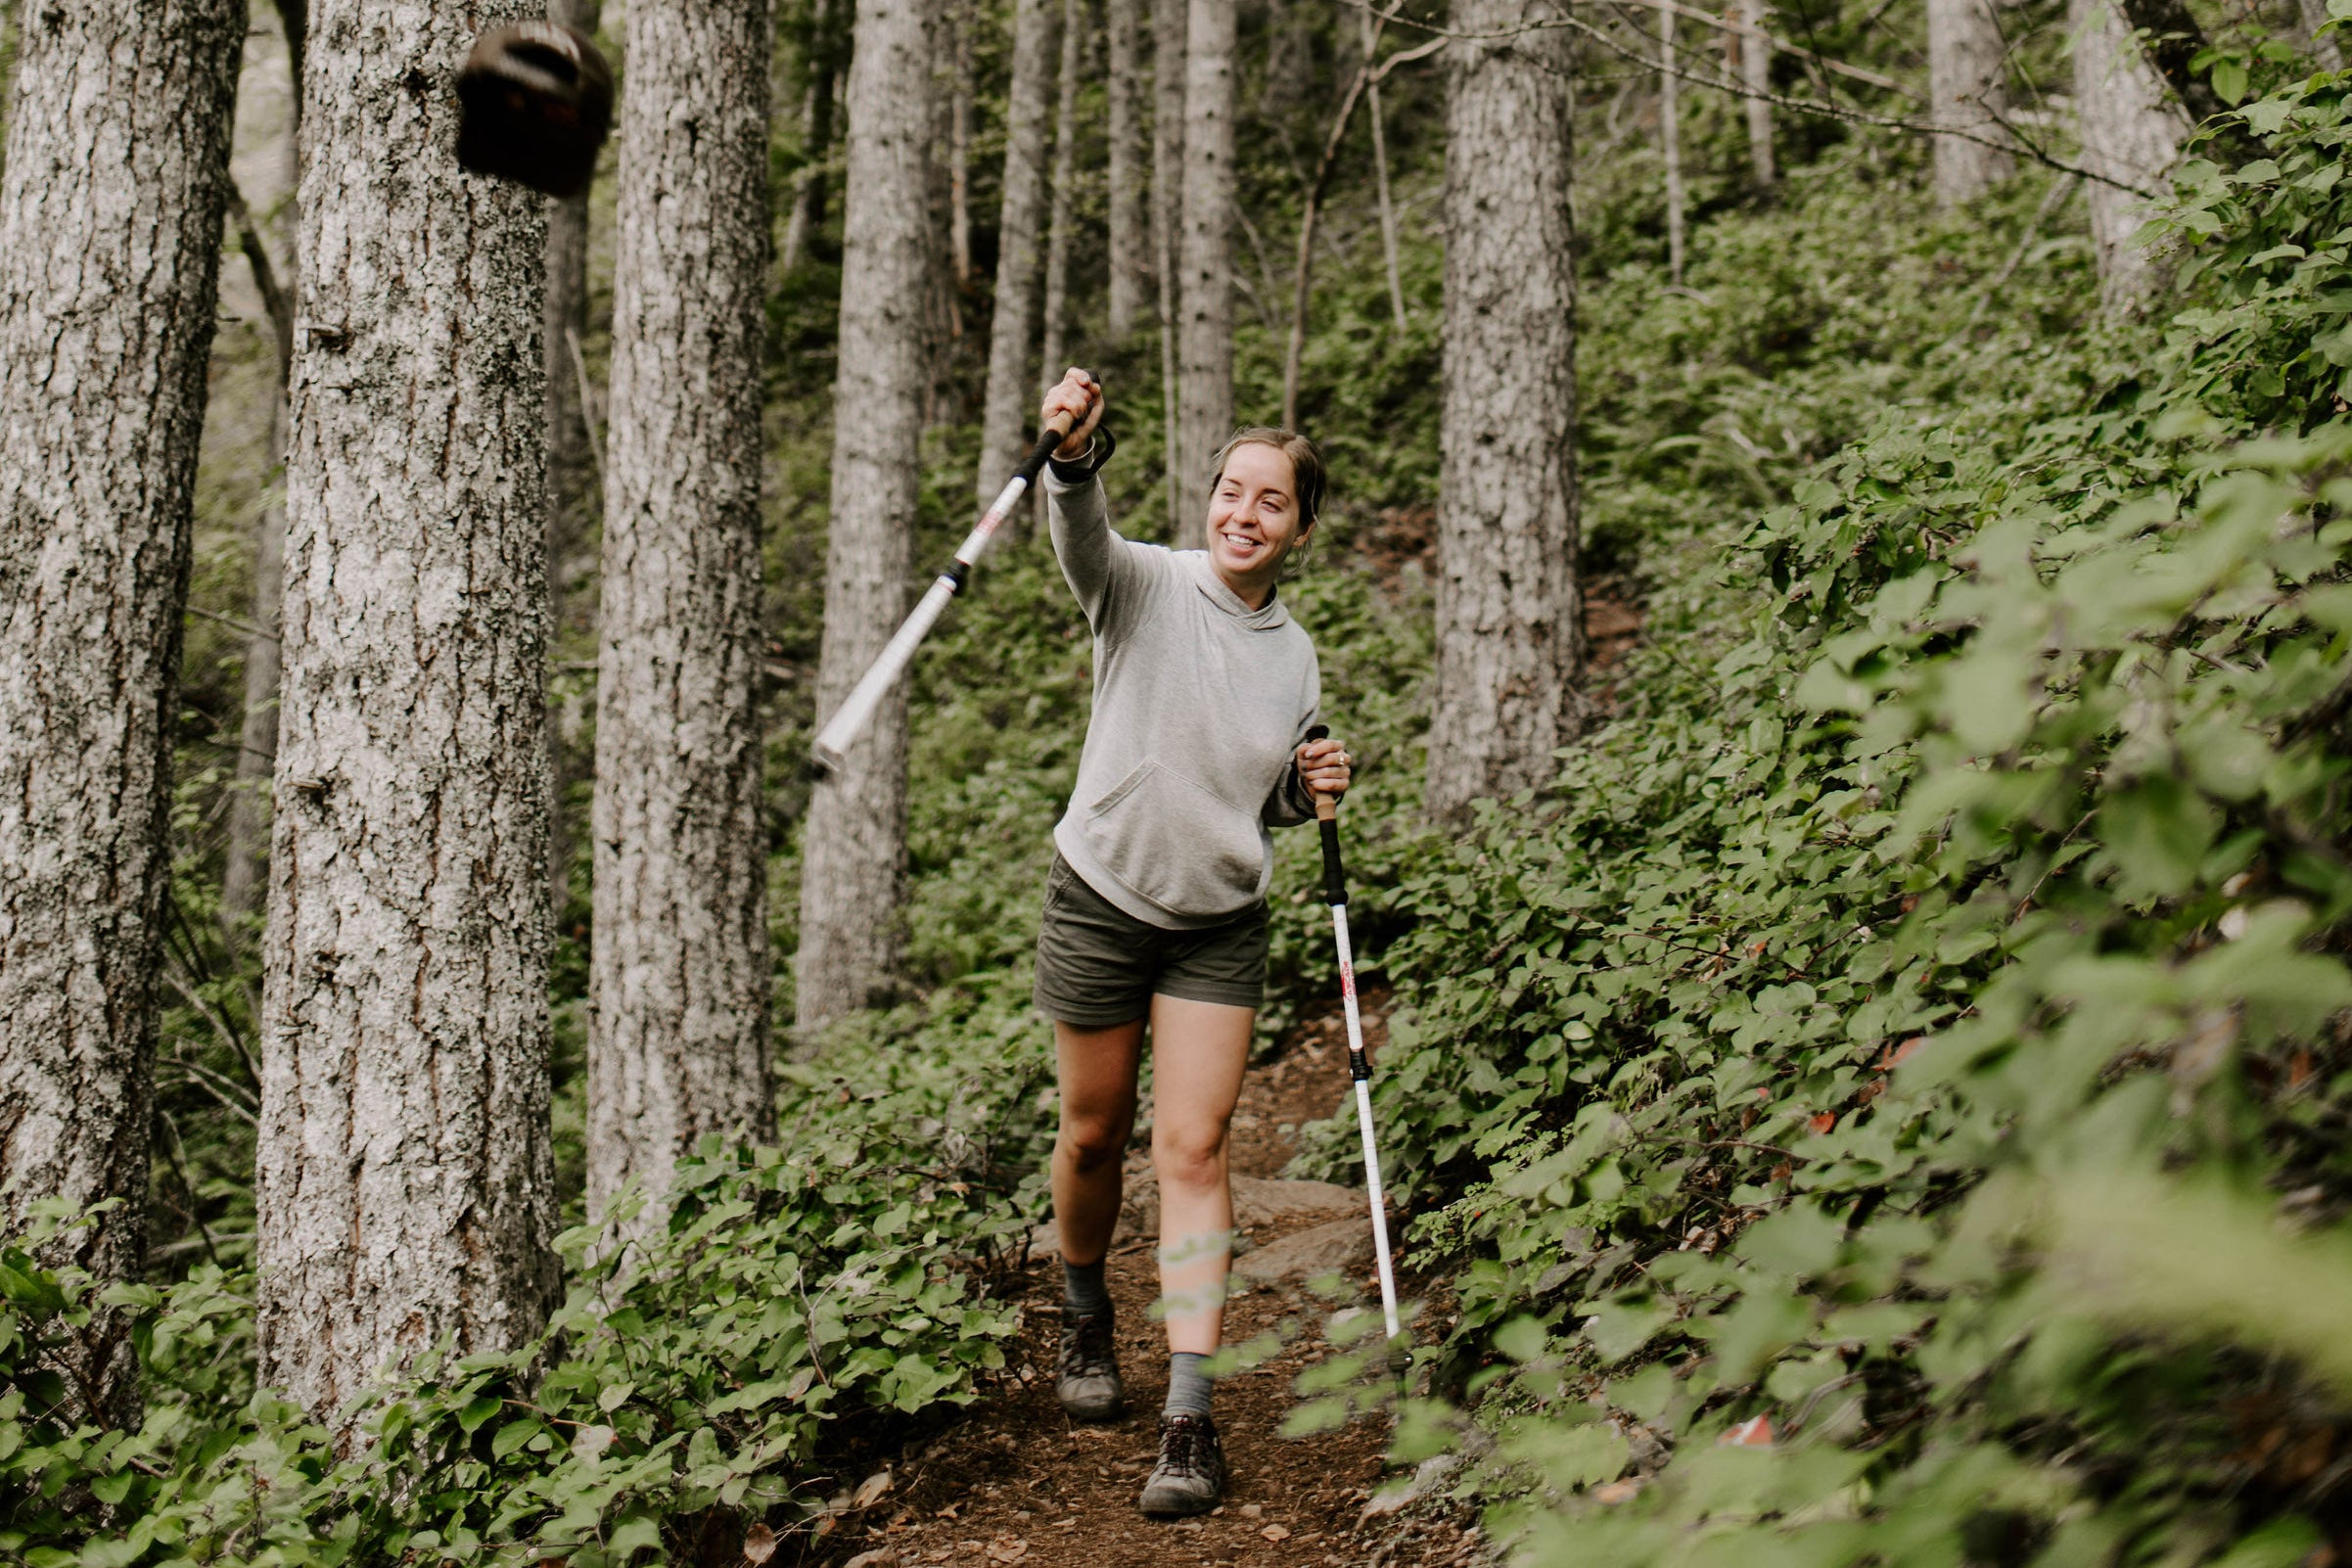 hiker practices social distancing trail etiquette during COVID-19